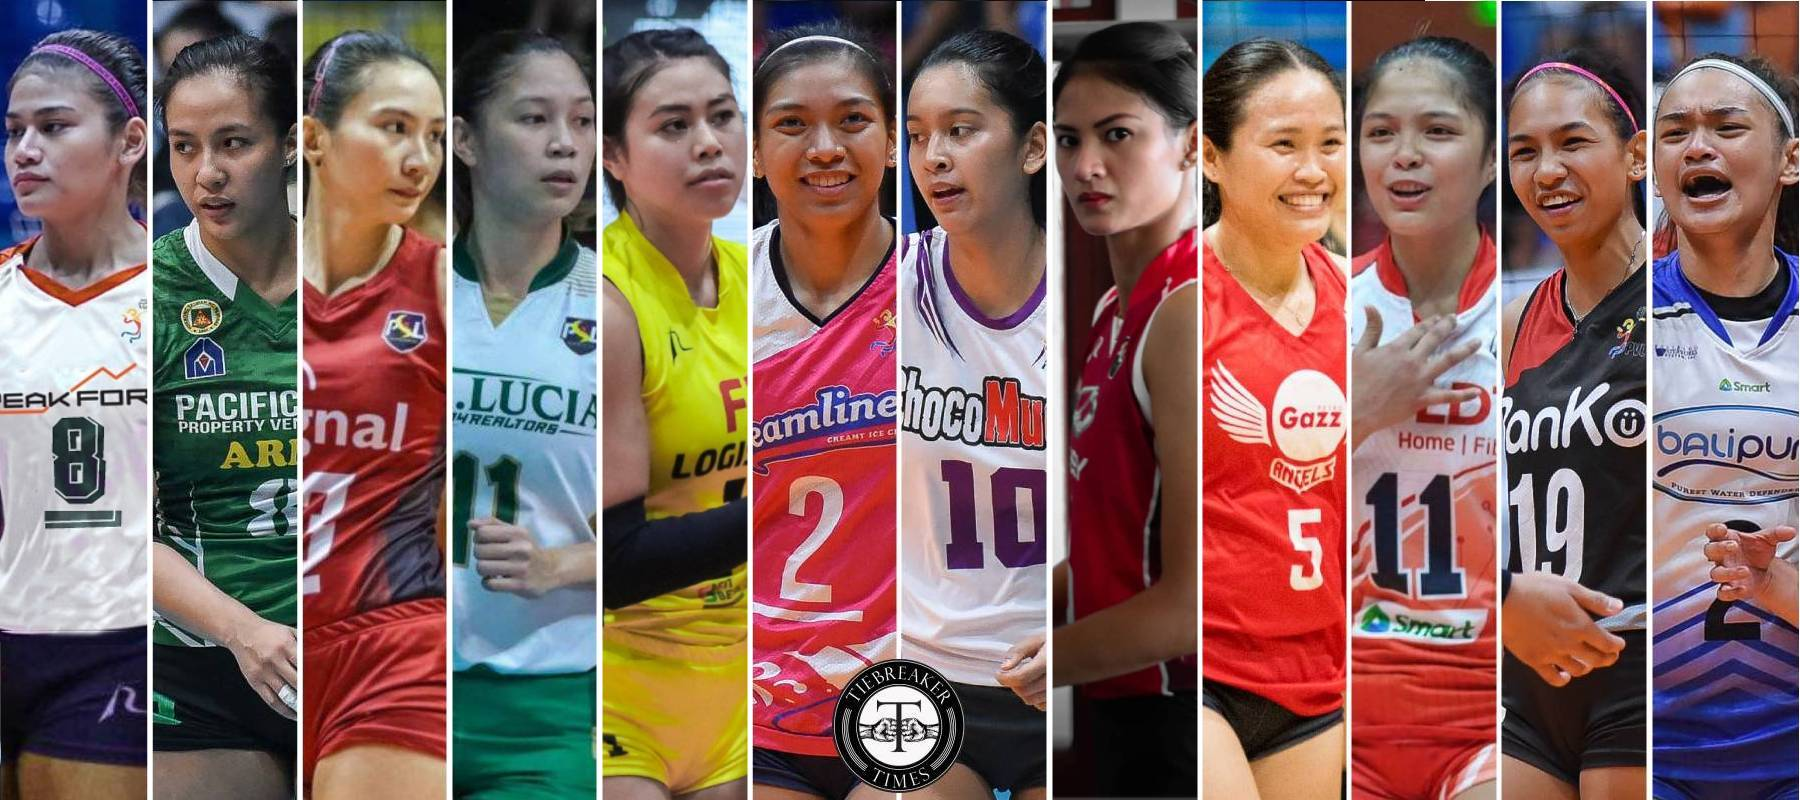 2021-pvl-open-conference-teams-final Graze Bombita excited to lead young BaliPure in stacked PVL field News PVL Volleyball  - philippine sports news